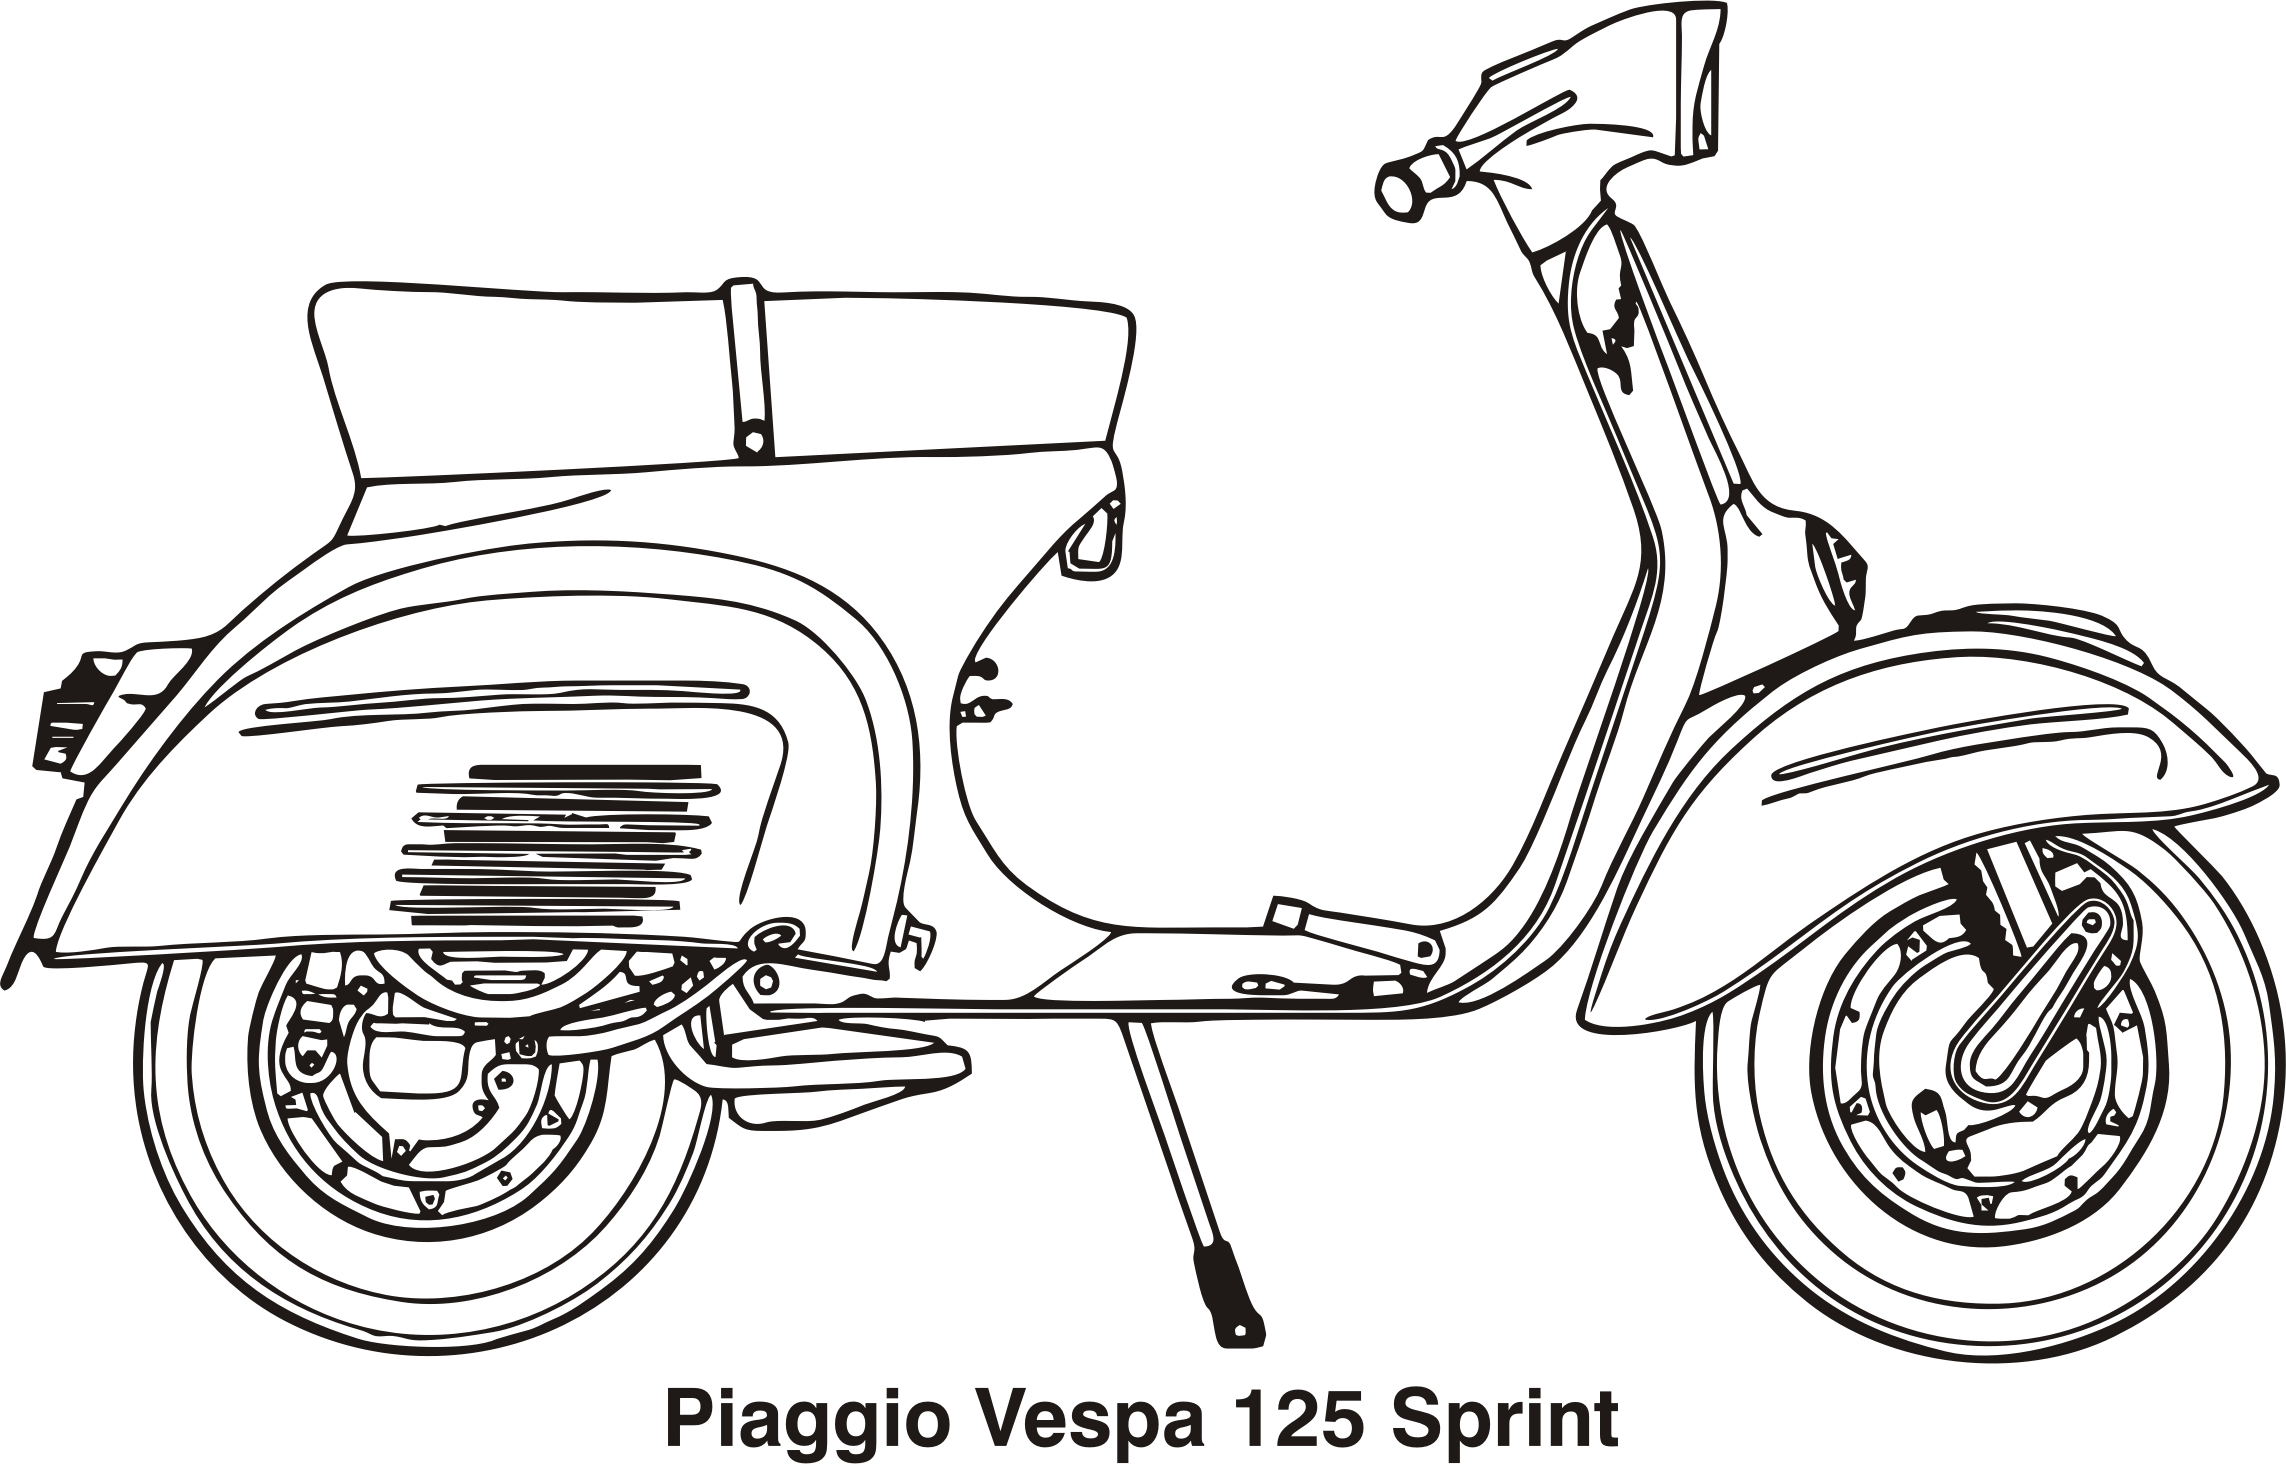 Piaggio Vespa 125 Sprint, year 1969 by Vanja